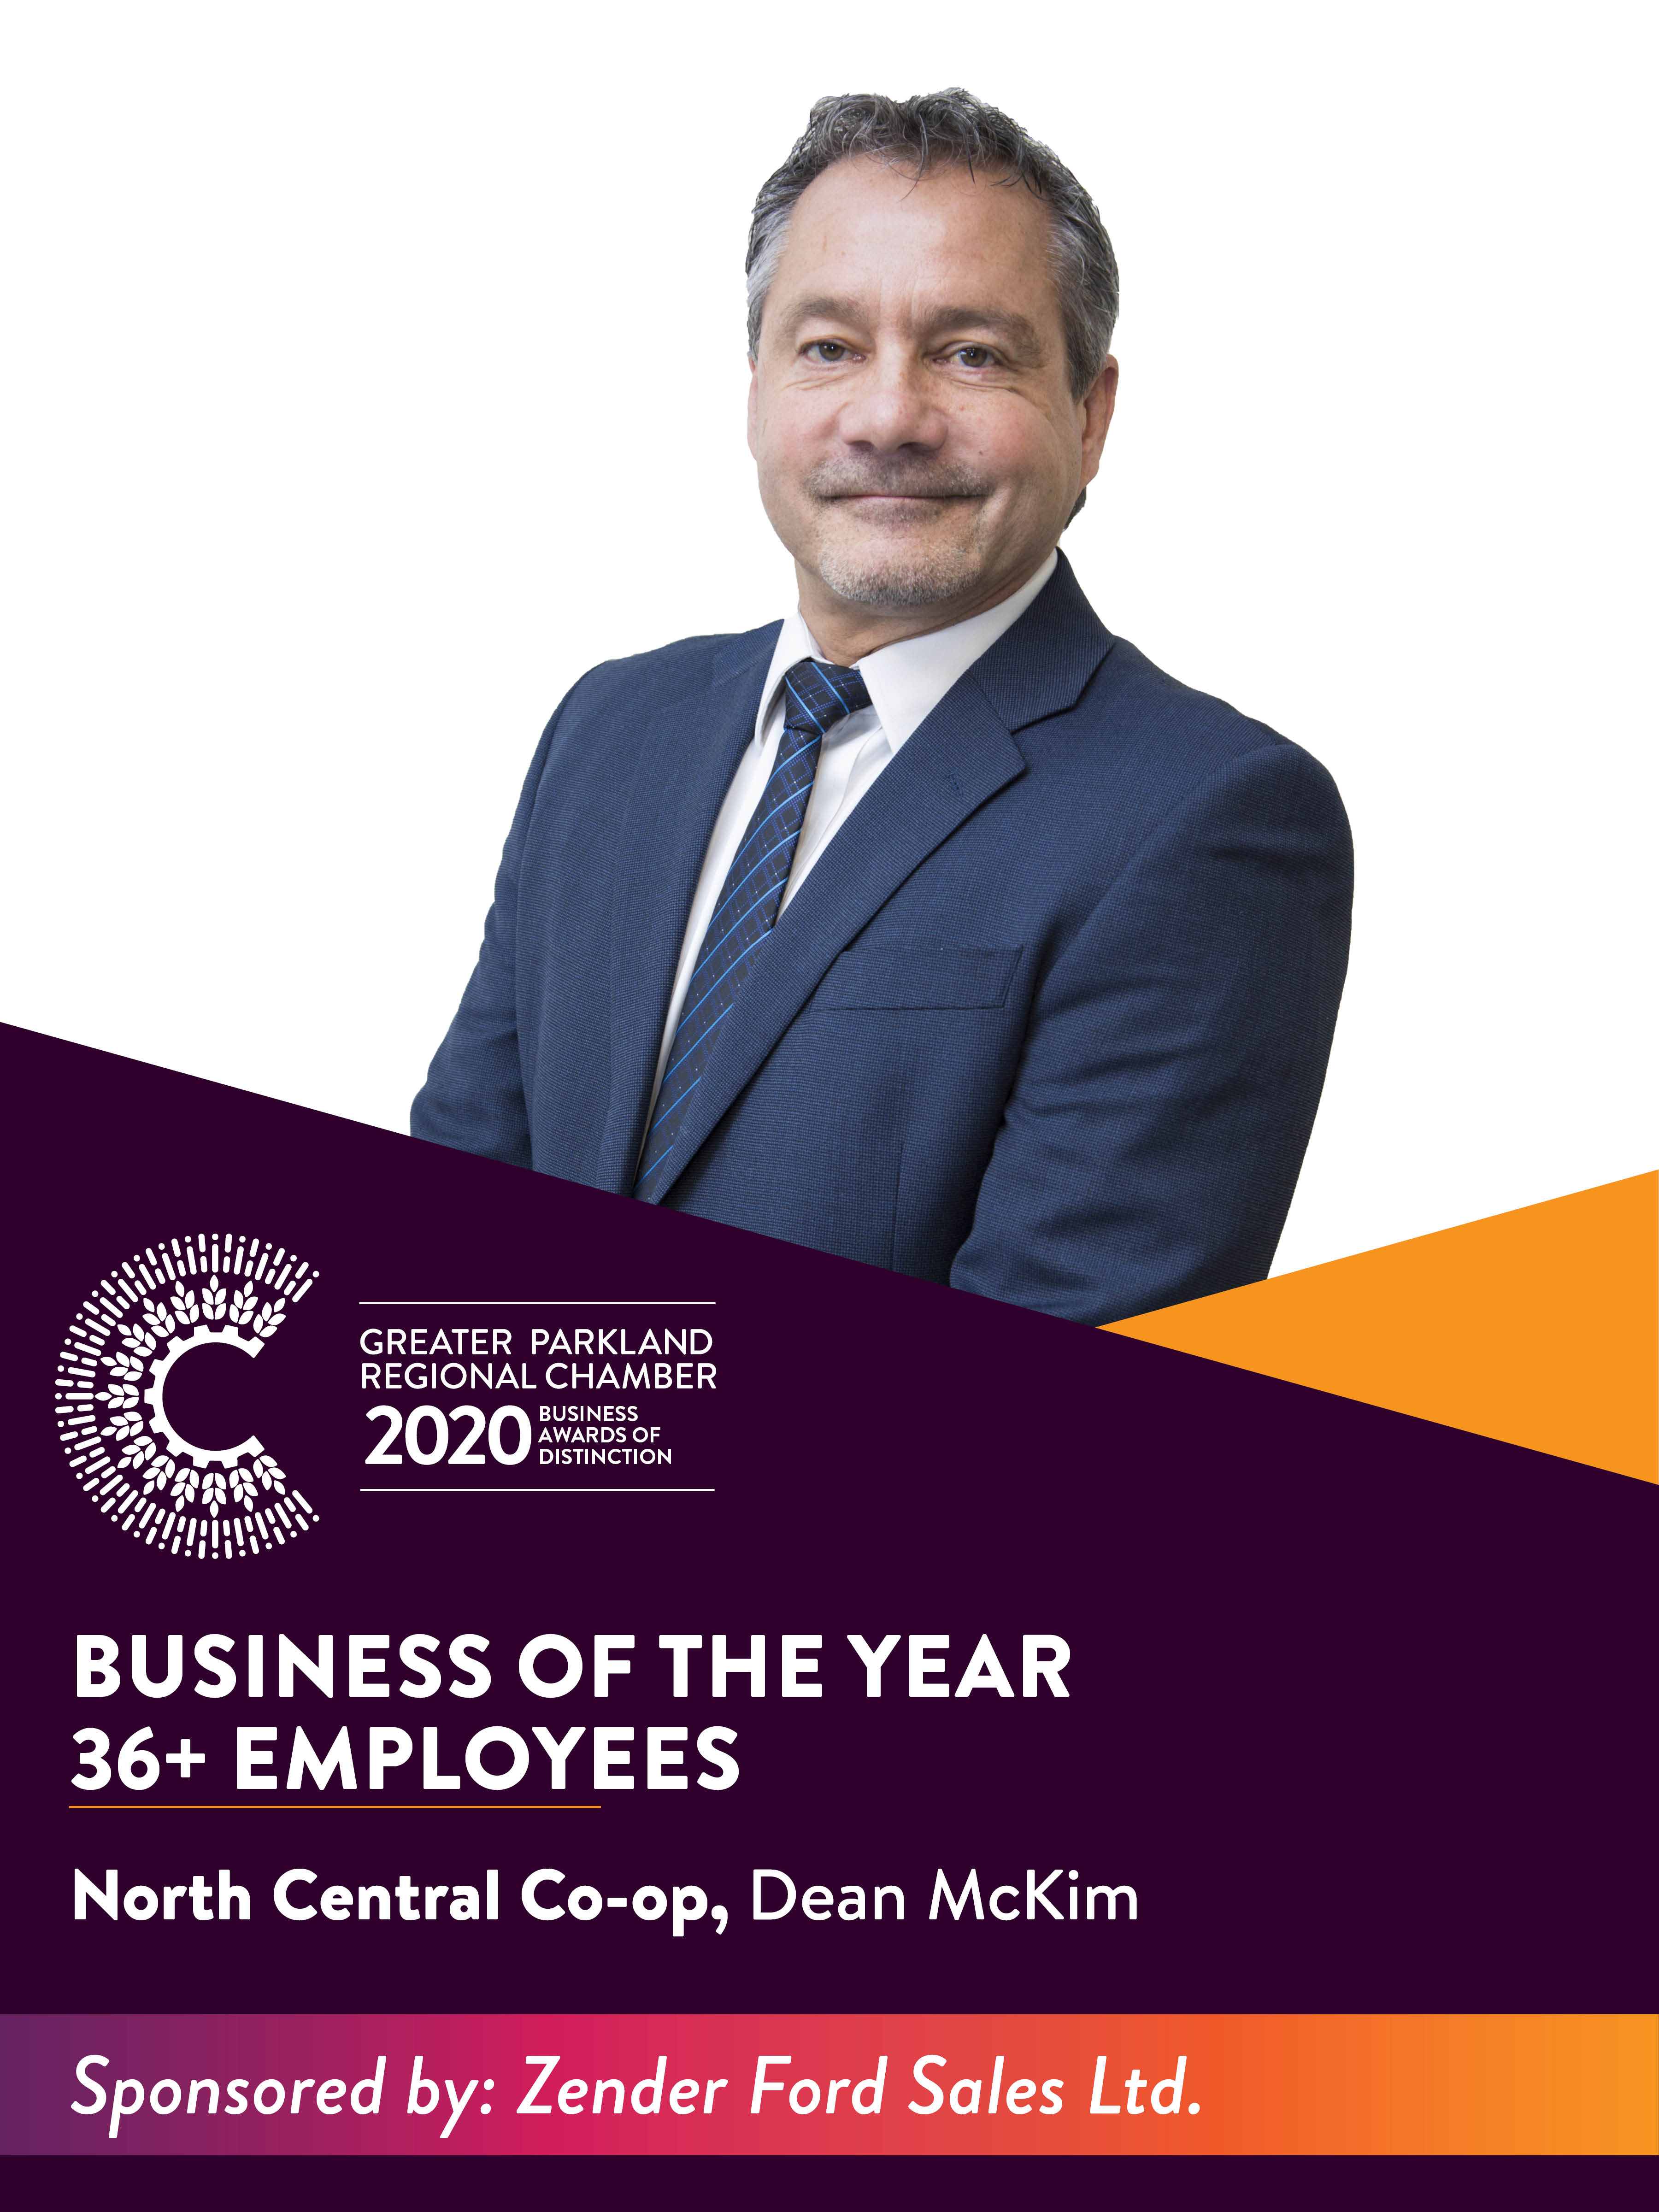 Business of the Year 36+